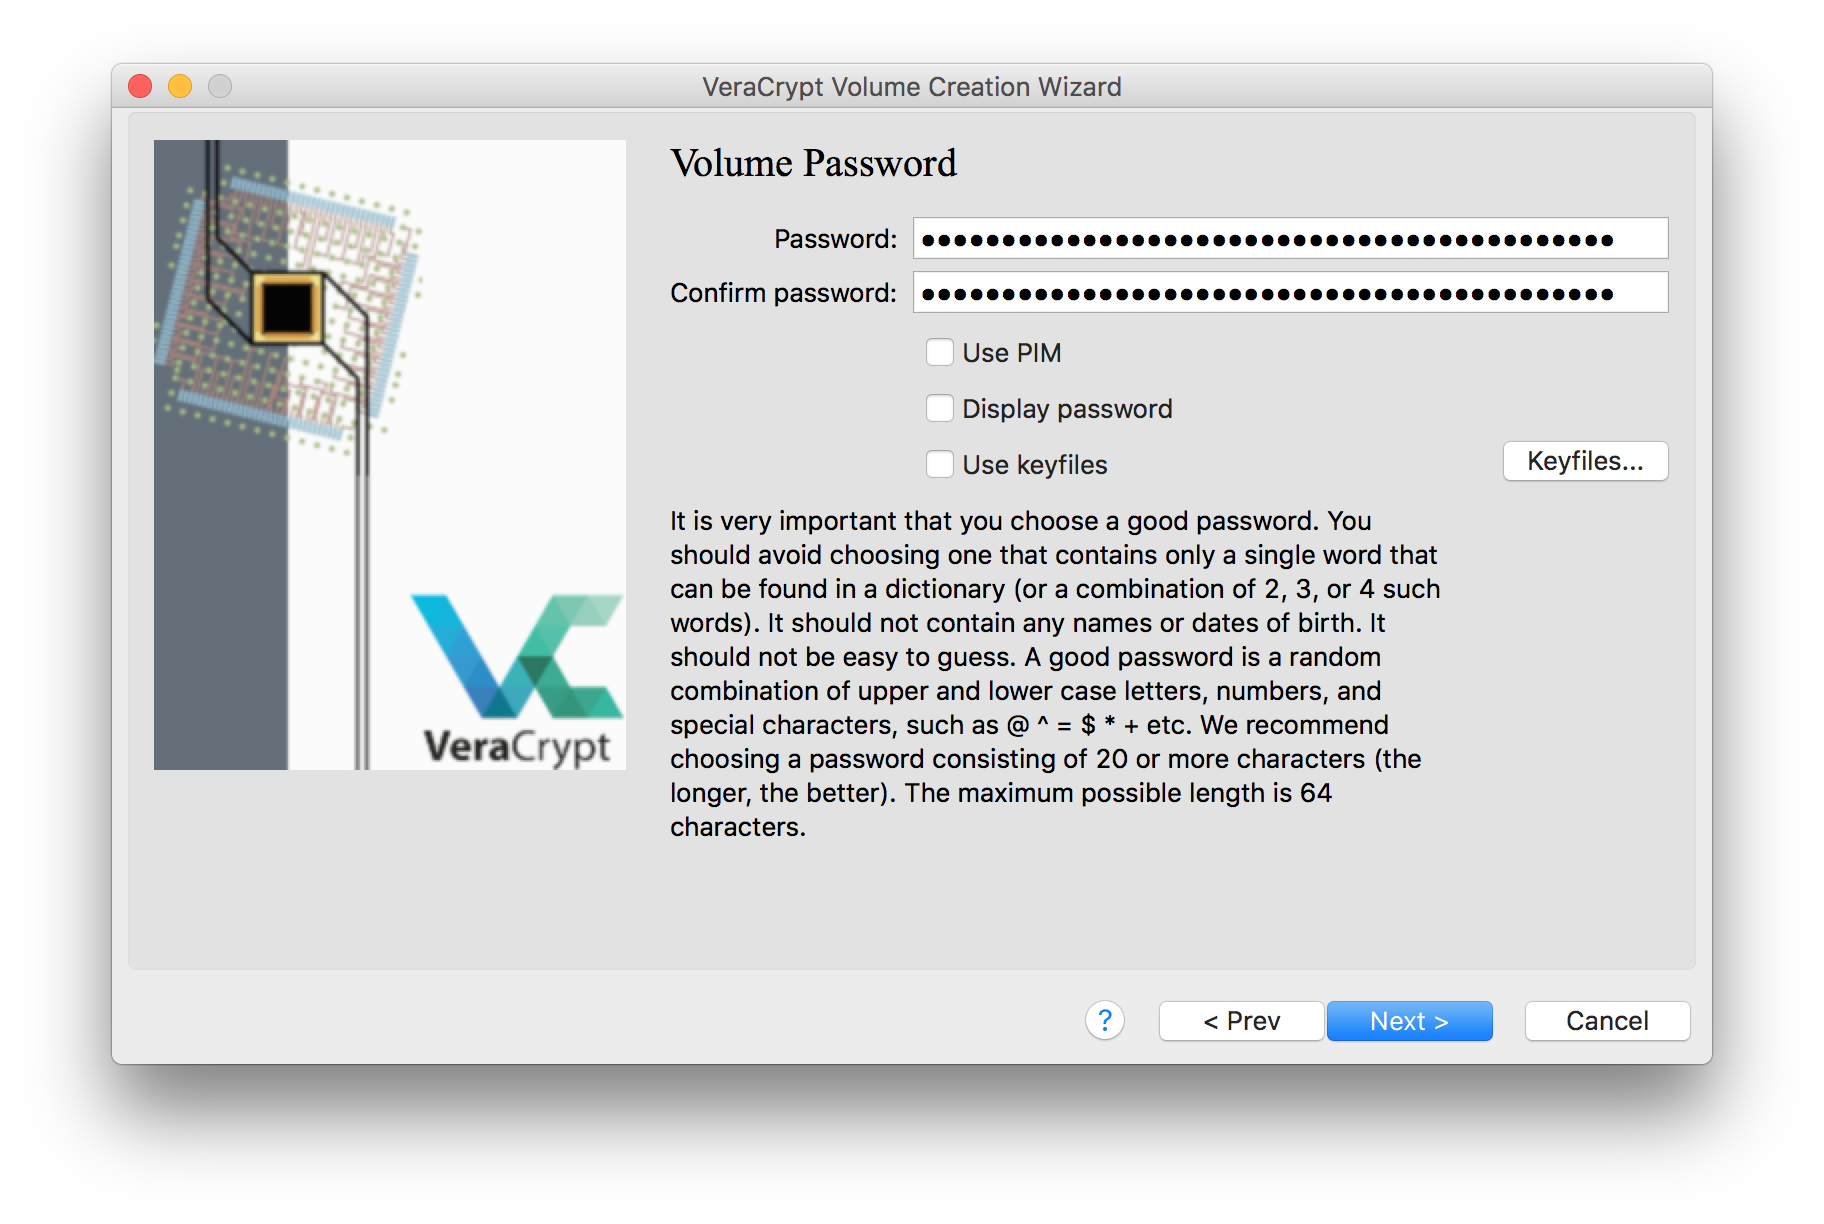 An image of the VeraCrypt volume creation window, with the password prompts filled with a long passphrase